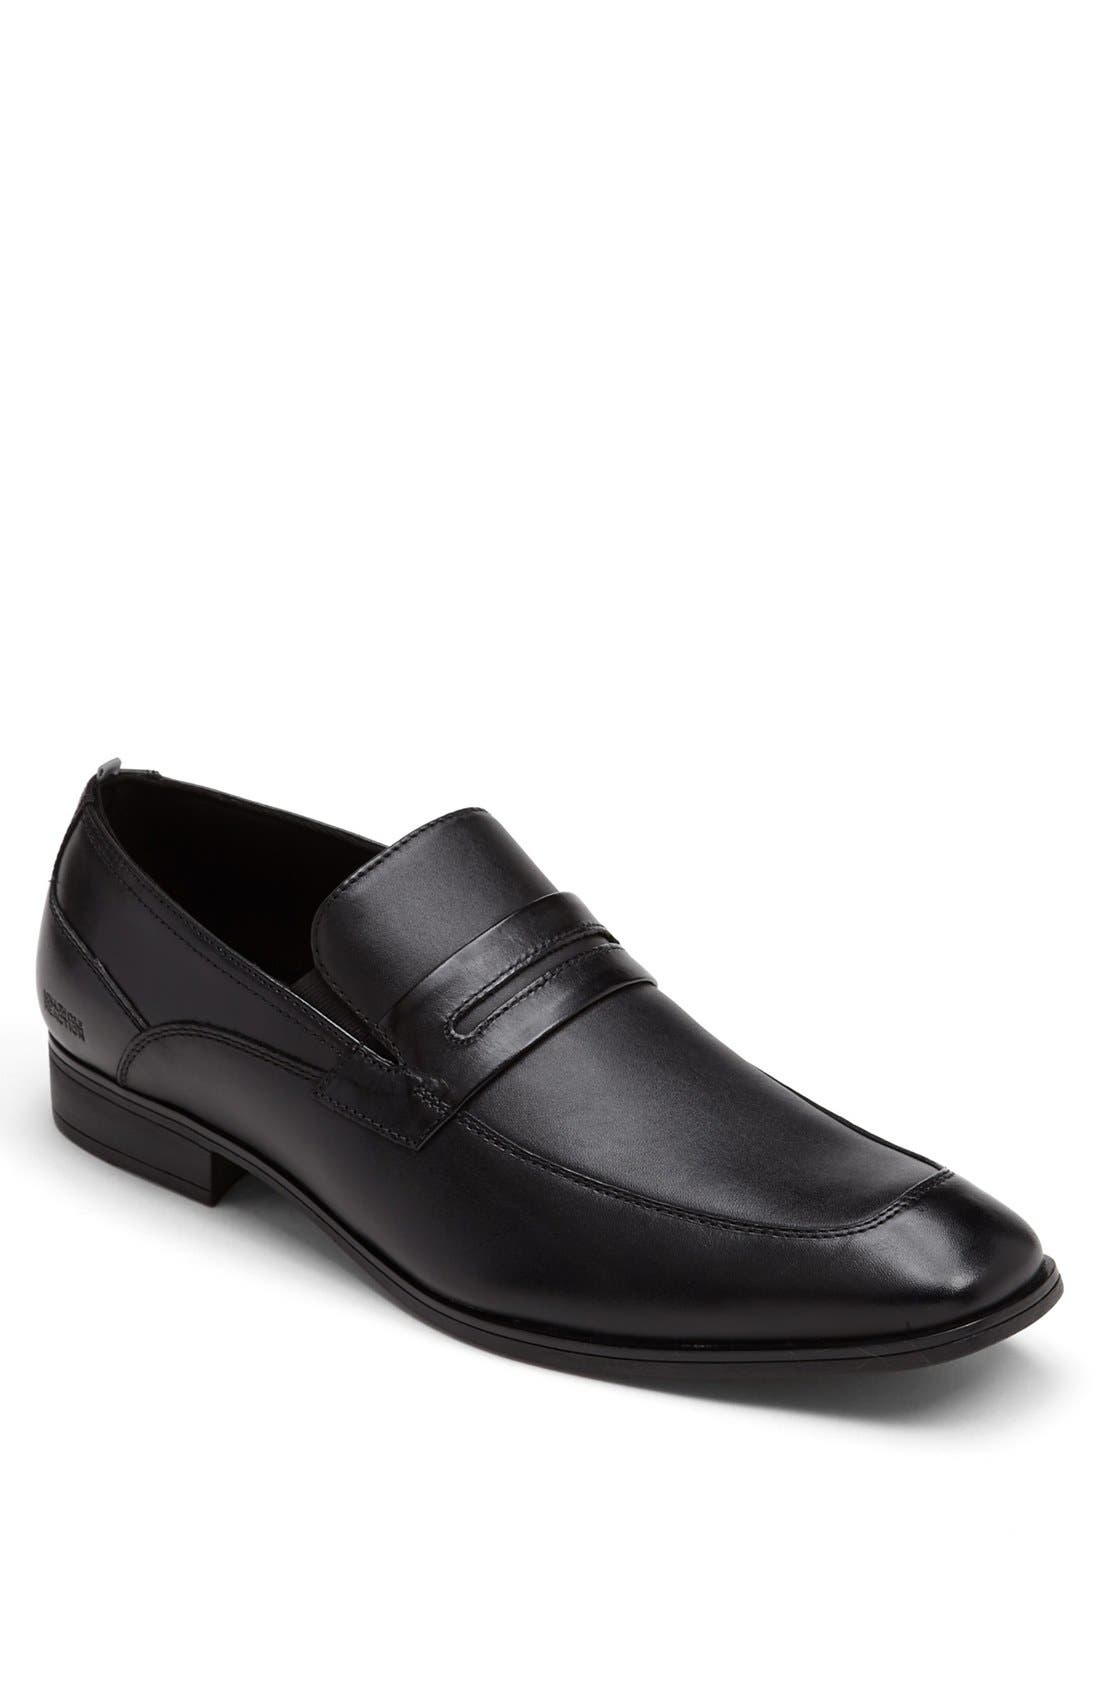 Alternate Image 1 Selected - Kenneth Cole Reaction 'Ghost Town' Penny Loafer